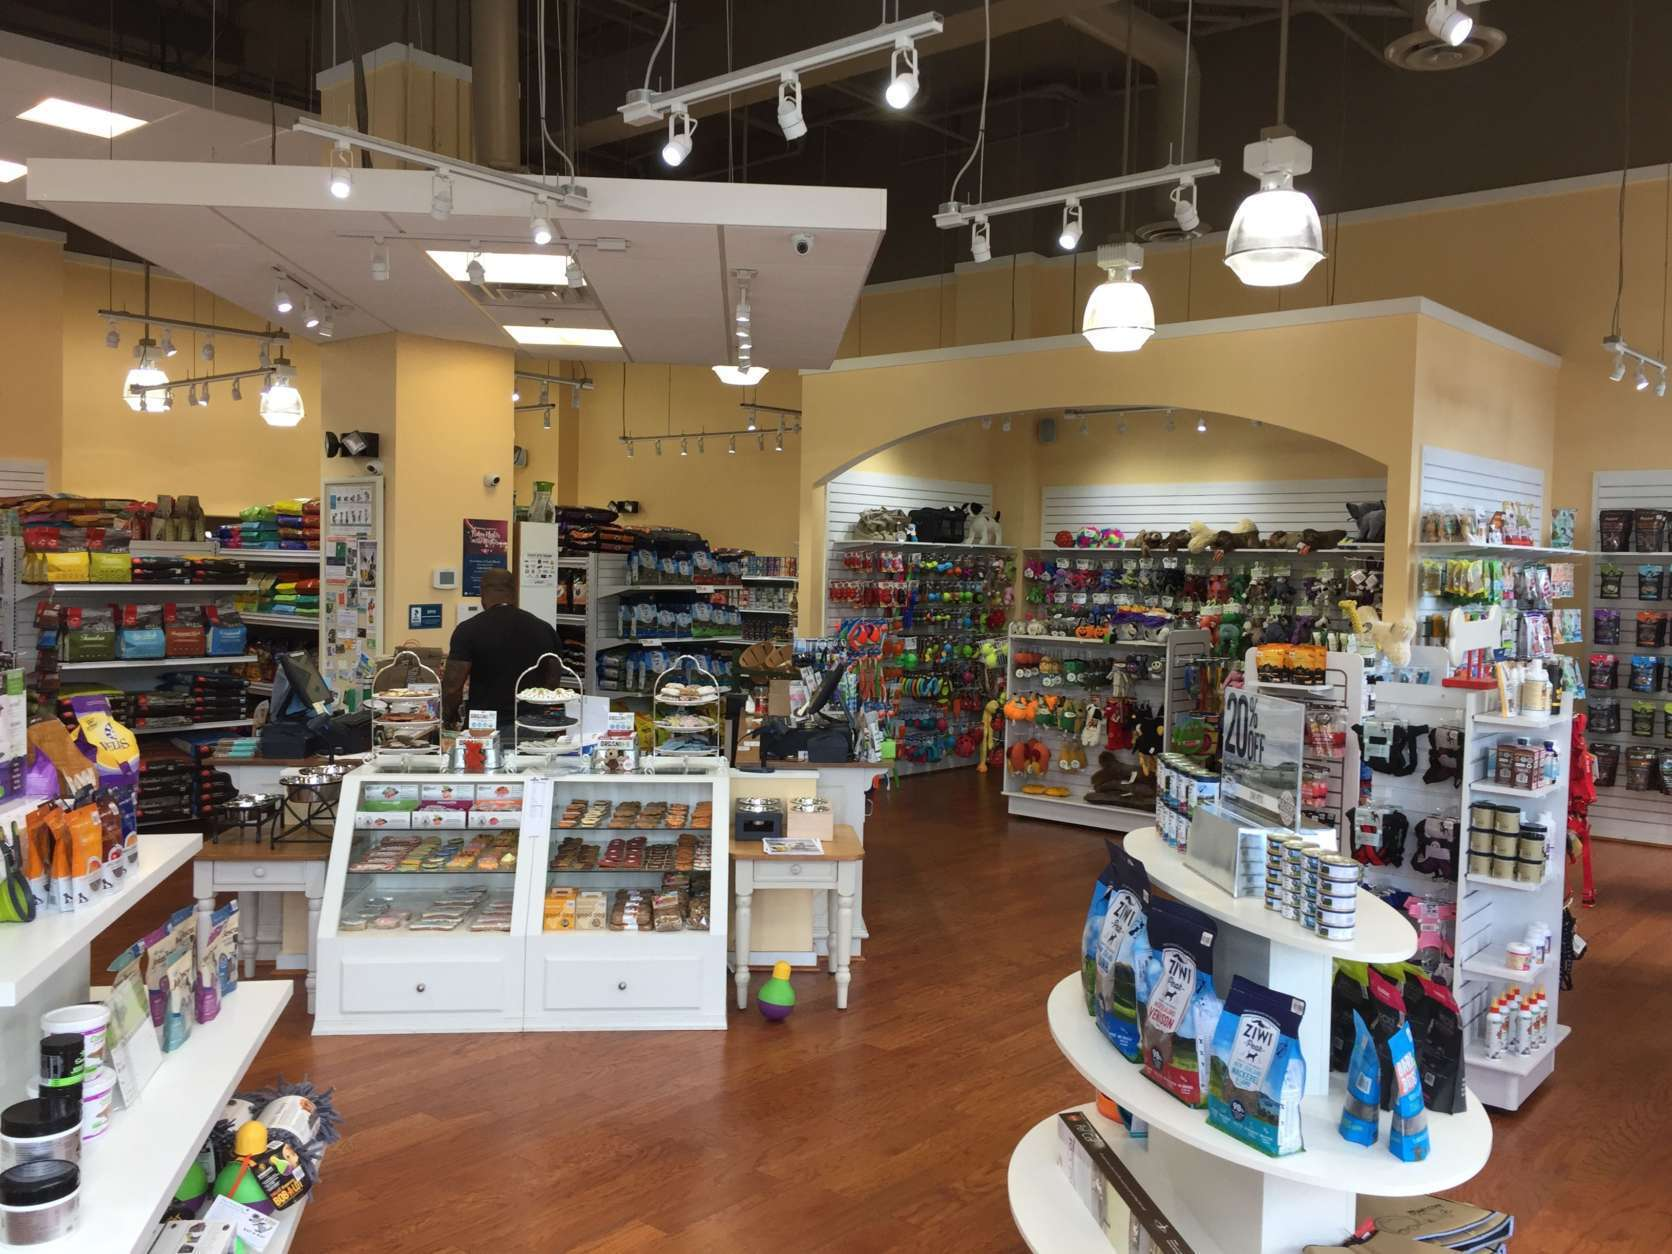 A leash, freeze-dried food (for dogs) and anxiety pills are among the items recommended by Kriser's Natural Pet in Northwest D.C. (WTOP/Rich Johnson)